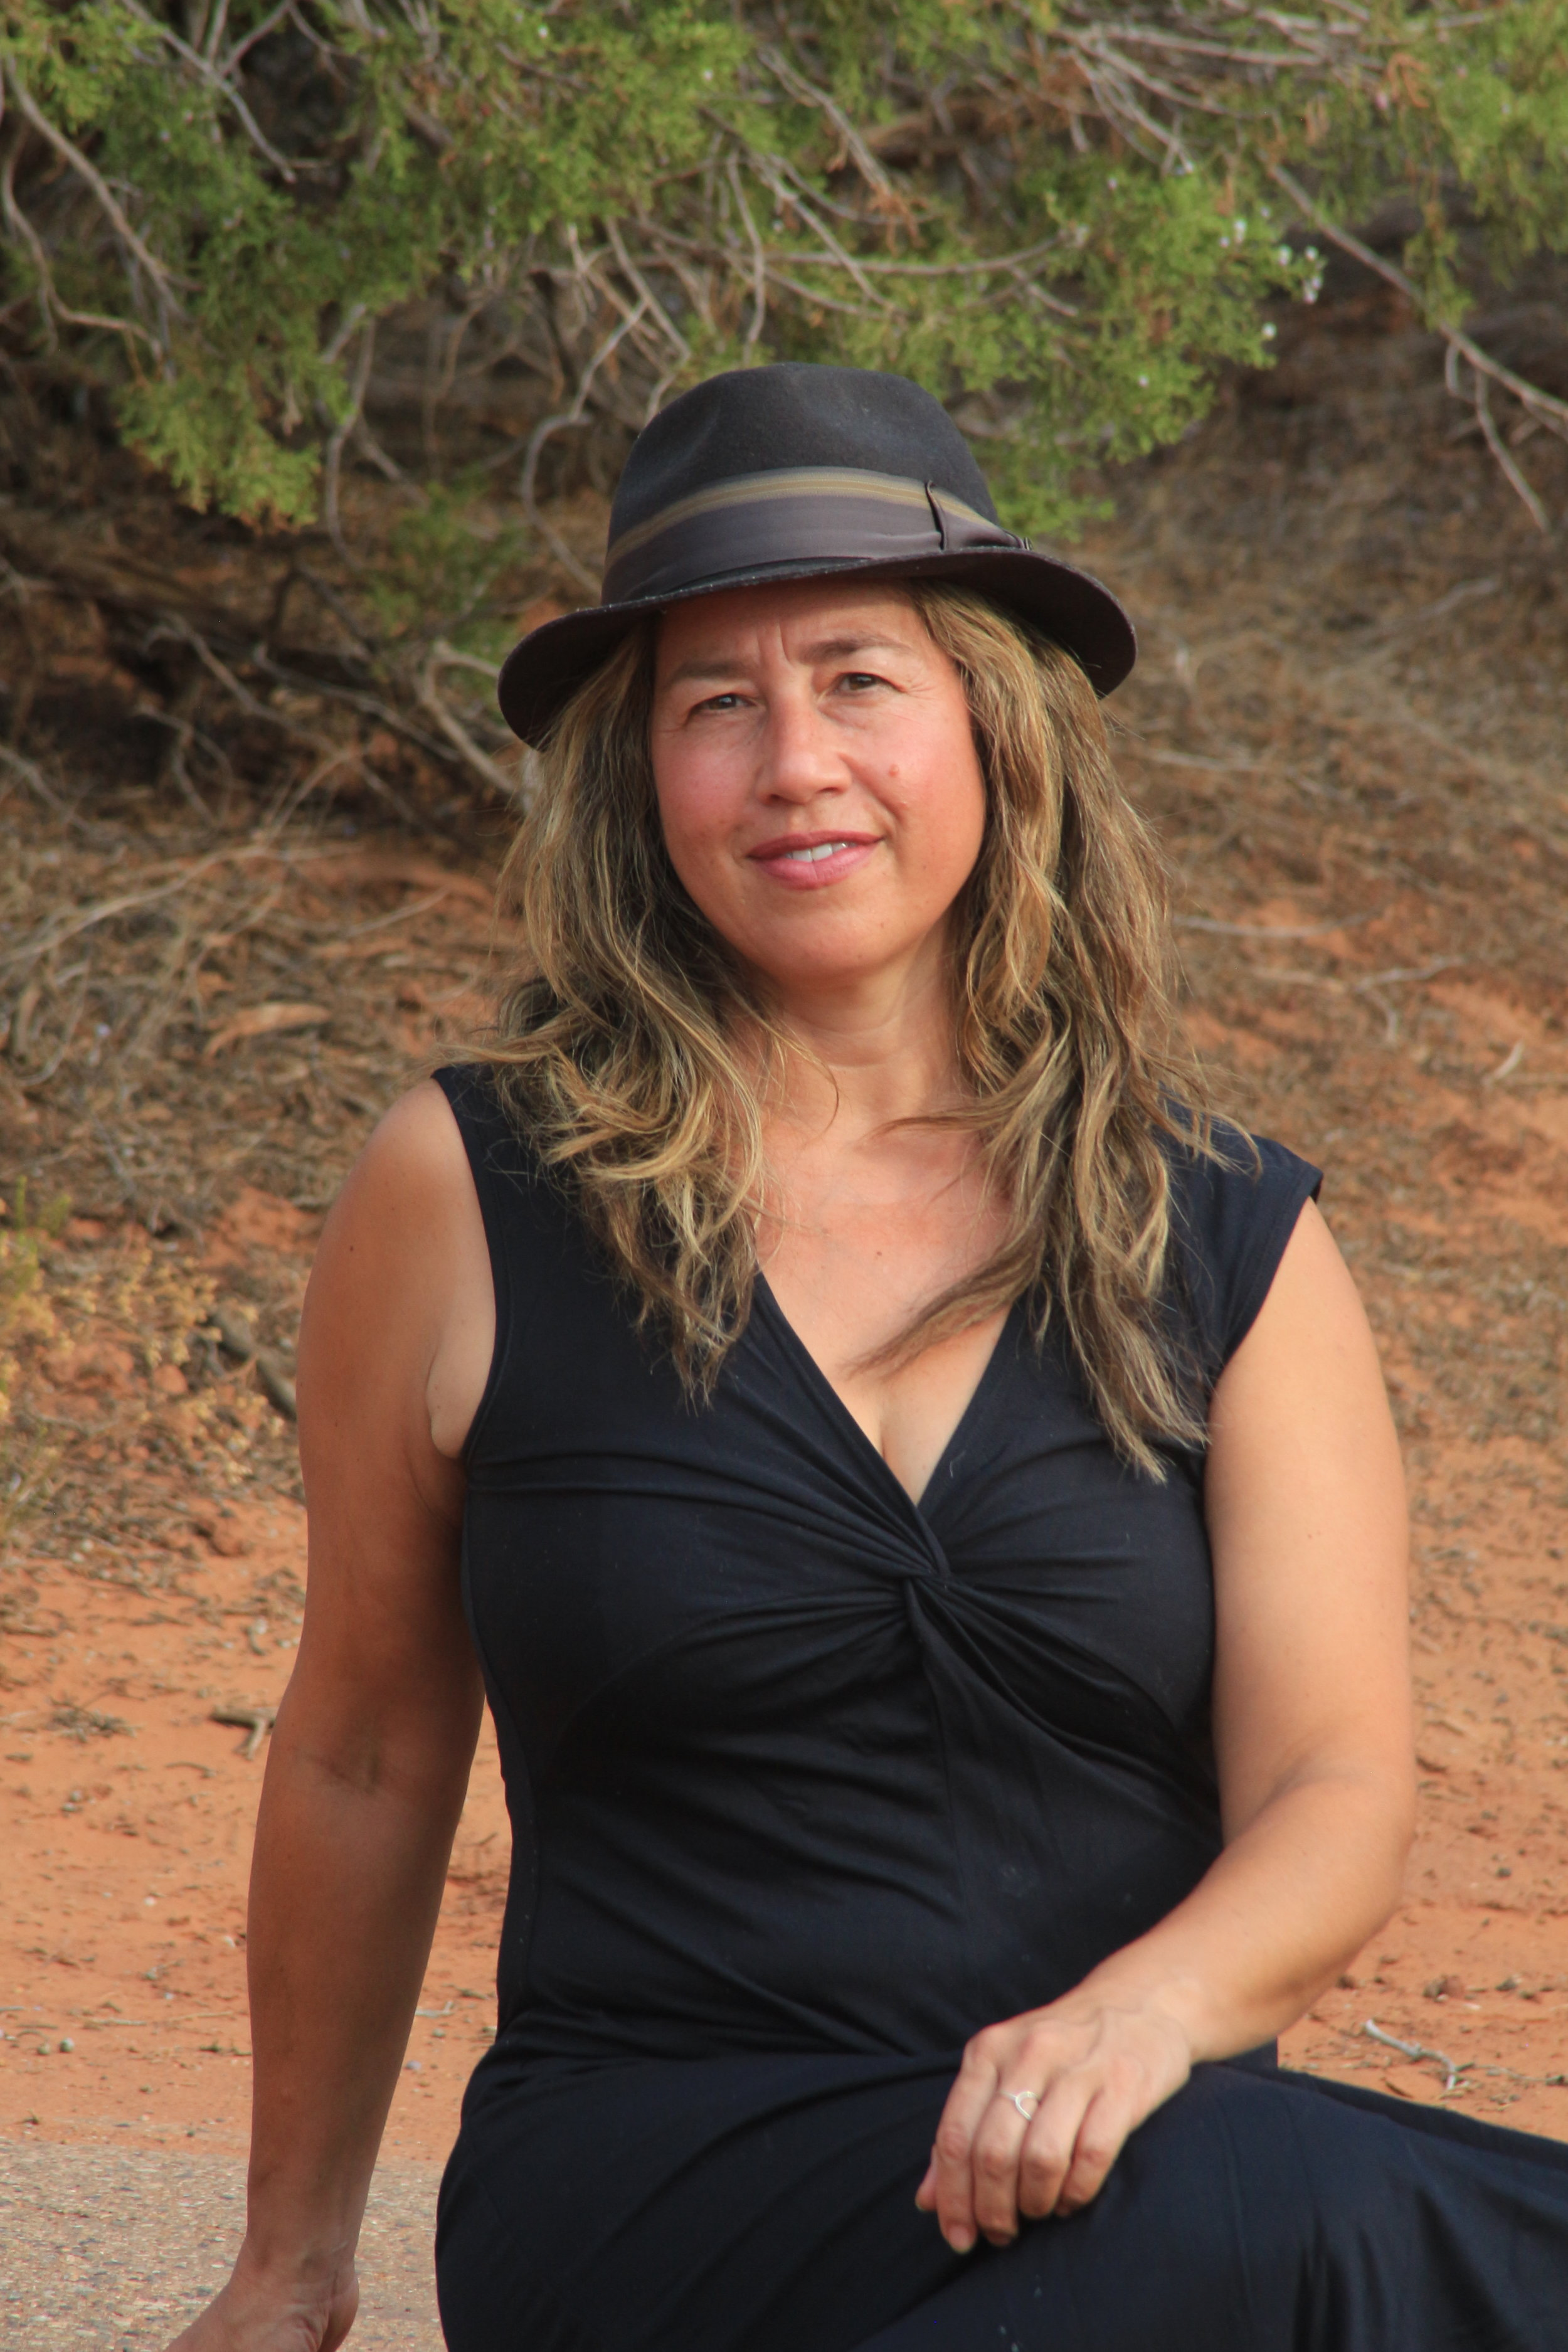 Sylvia Salcedo - Co- founderSylvia Salcedo has over two decades as a healer. As an acupuncturist, health coach, sound + breath work facilitator she knew there was a need for deeper healing and more soulful living.Click here for more about Sylvia.